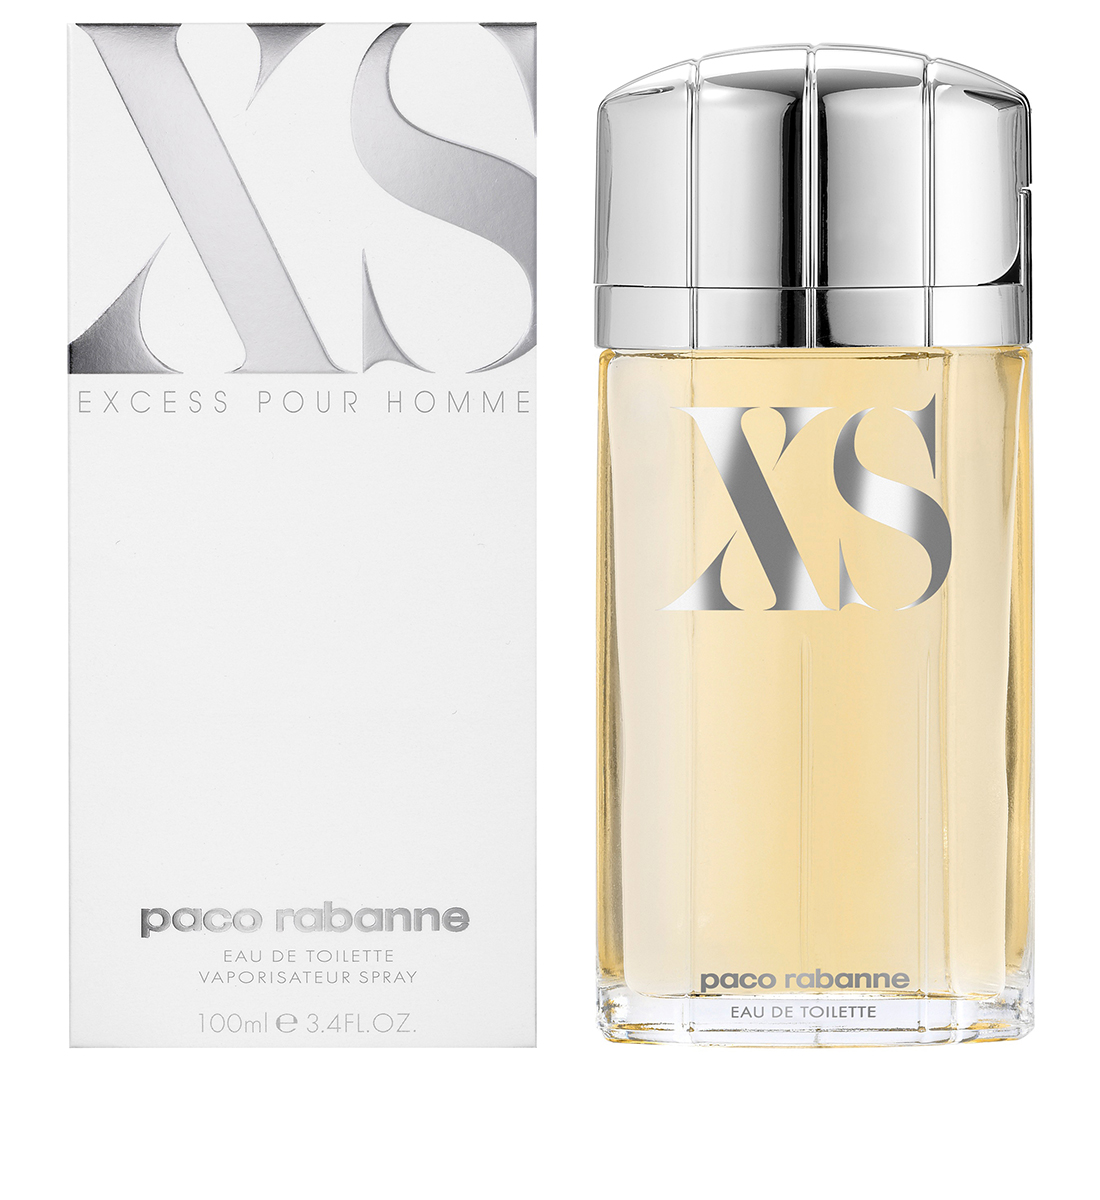 parfum excess de xs paco rabanne eau de toilette 100 ml. Black Bedroom Furniture Sets. Home Design Ideas